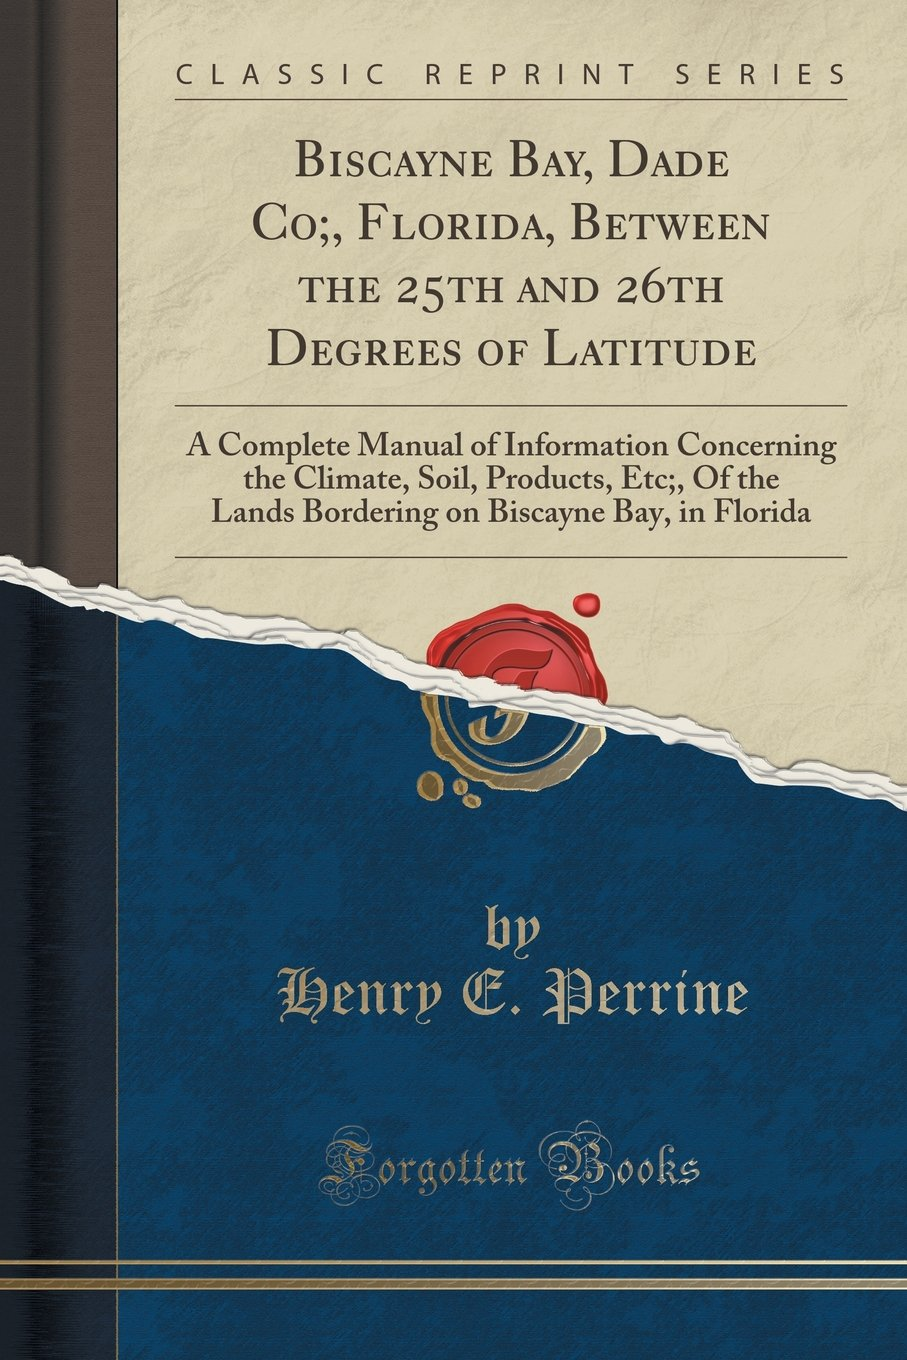 Read Online Biscayne Bay, Dade Co;, Florida, Between the 25th and 26th Degrees of Latitude: A Complete Manual of Information Concerning the Climate, Soil, ... on Biscayne Bay, in Florida (Classic Reprint) PDF